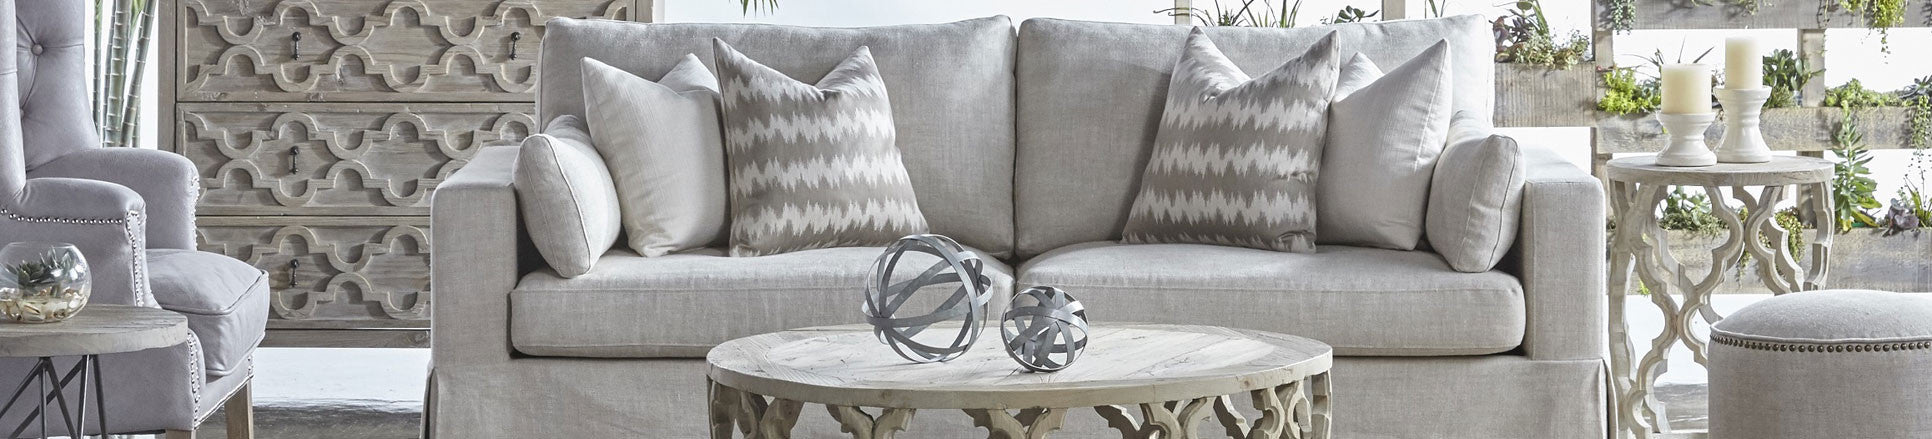 sofas san diego: living room furniture san diego | skylar's home